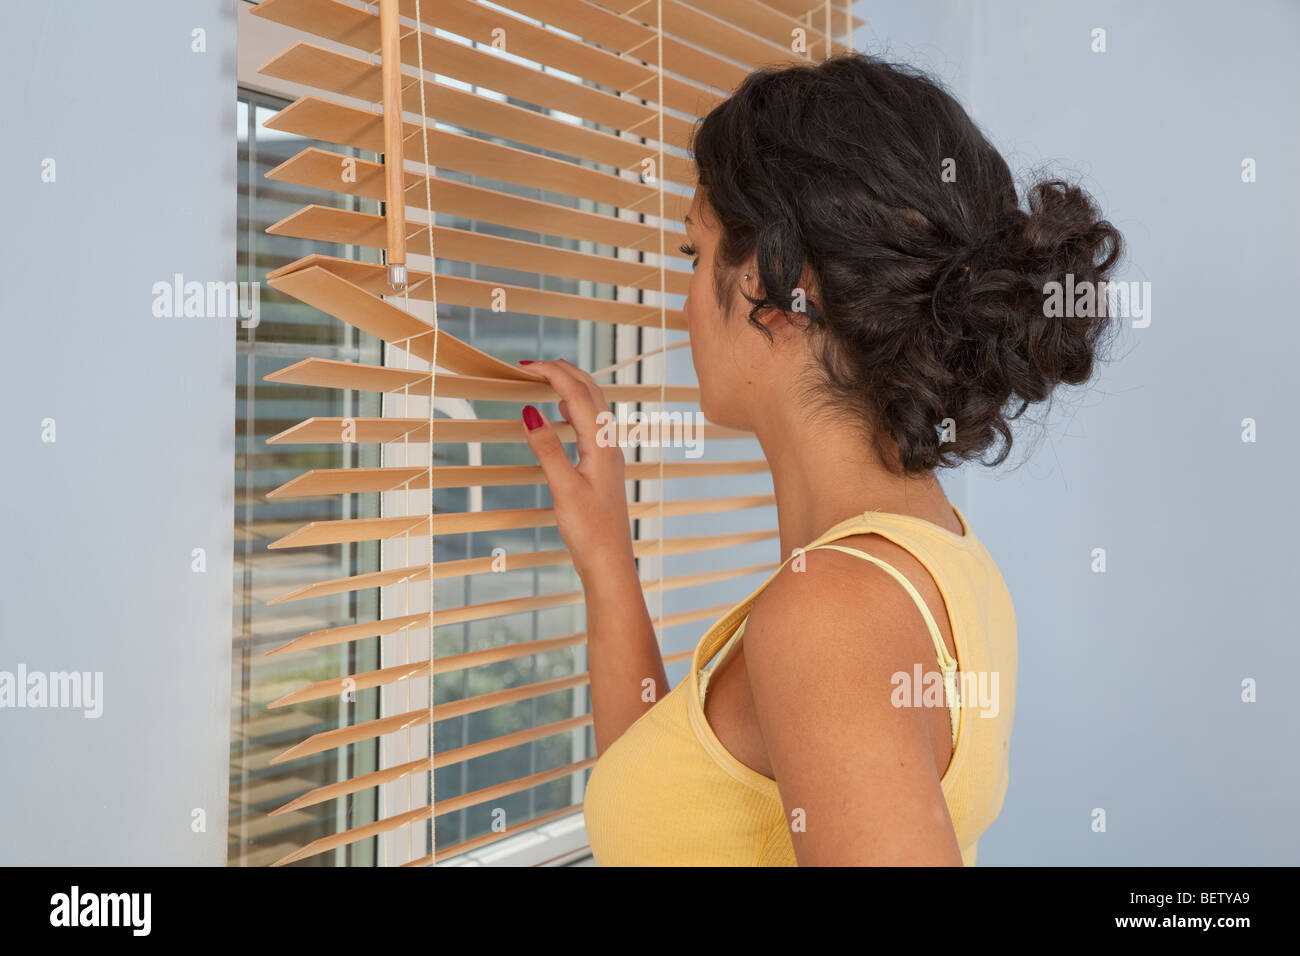 Young woman looking out of a window through blinds Stock Photo